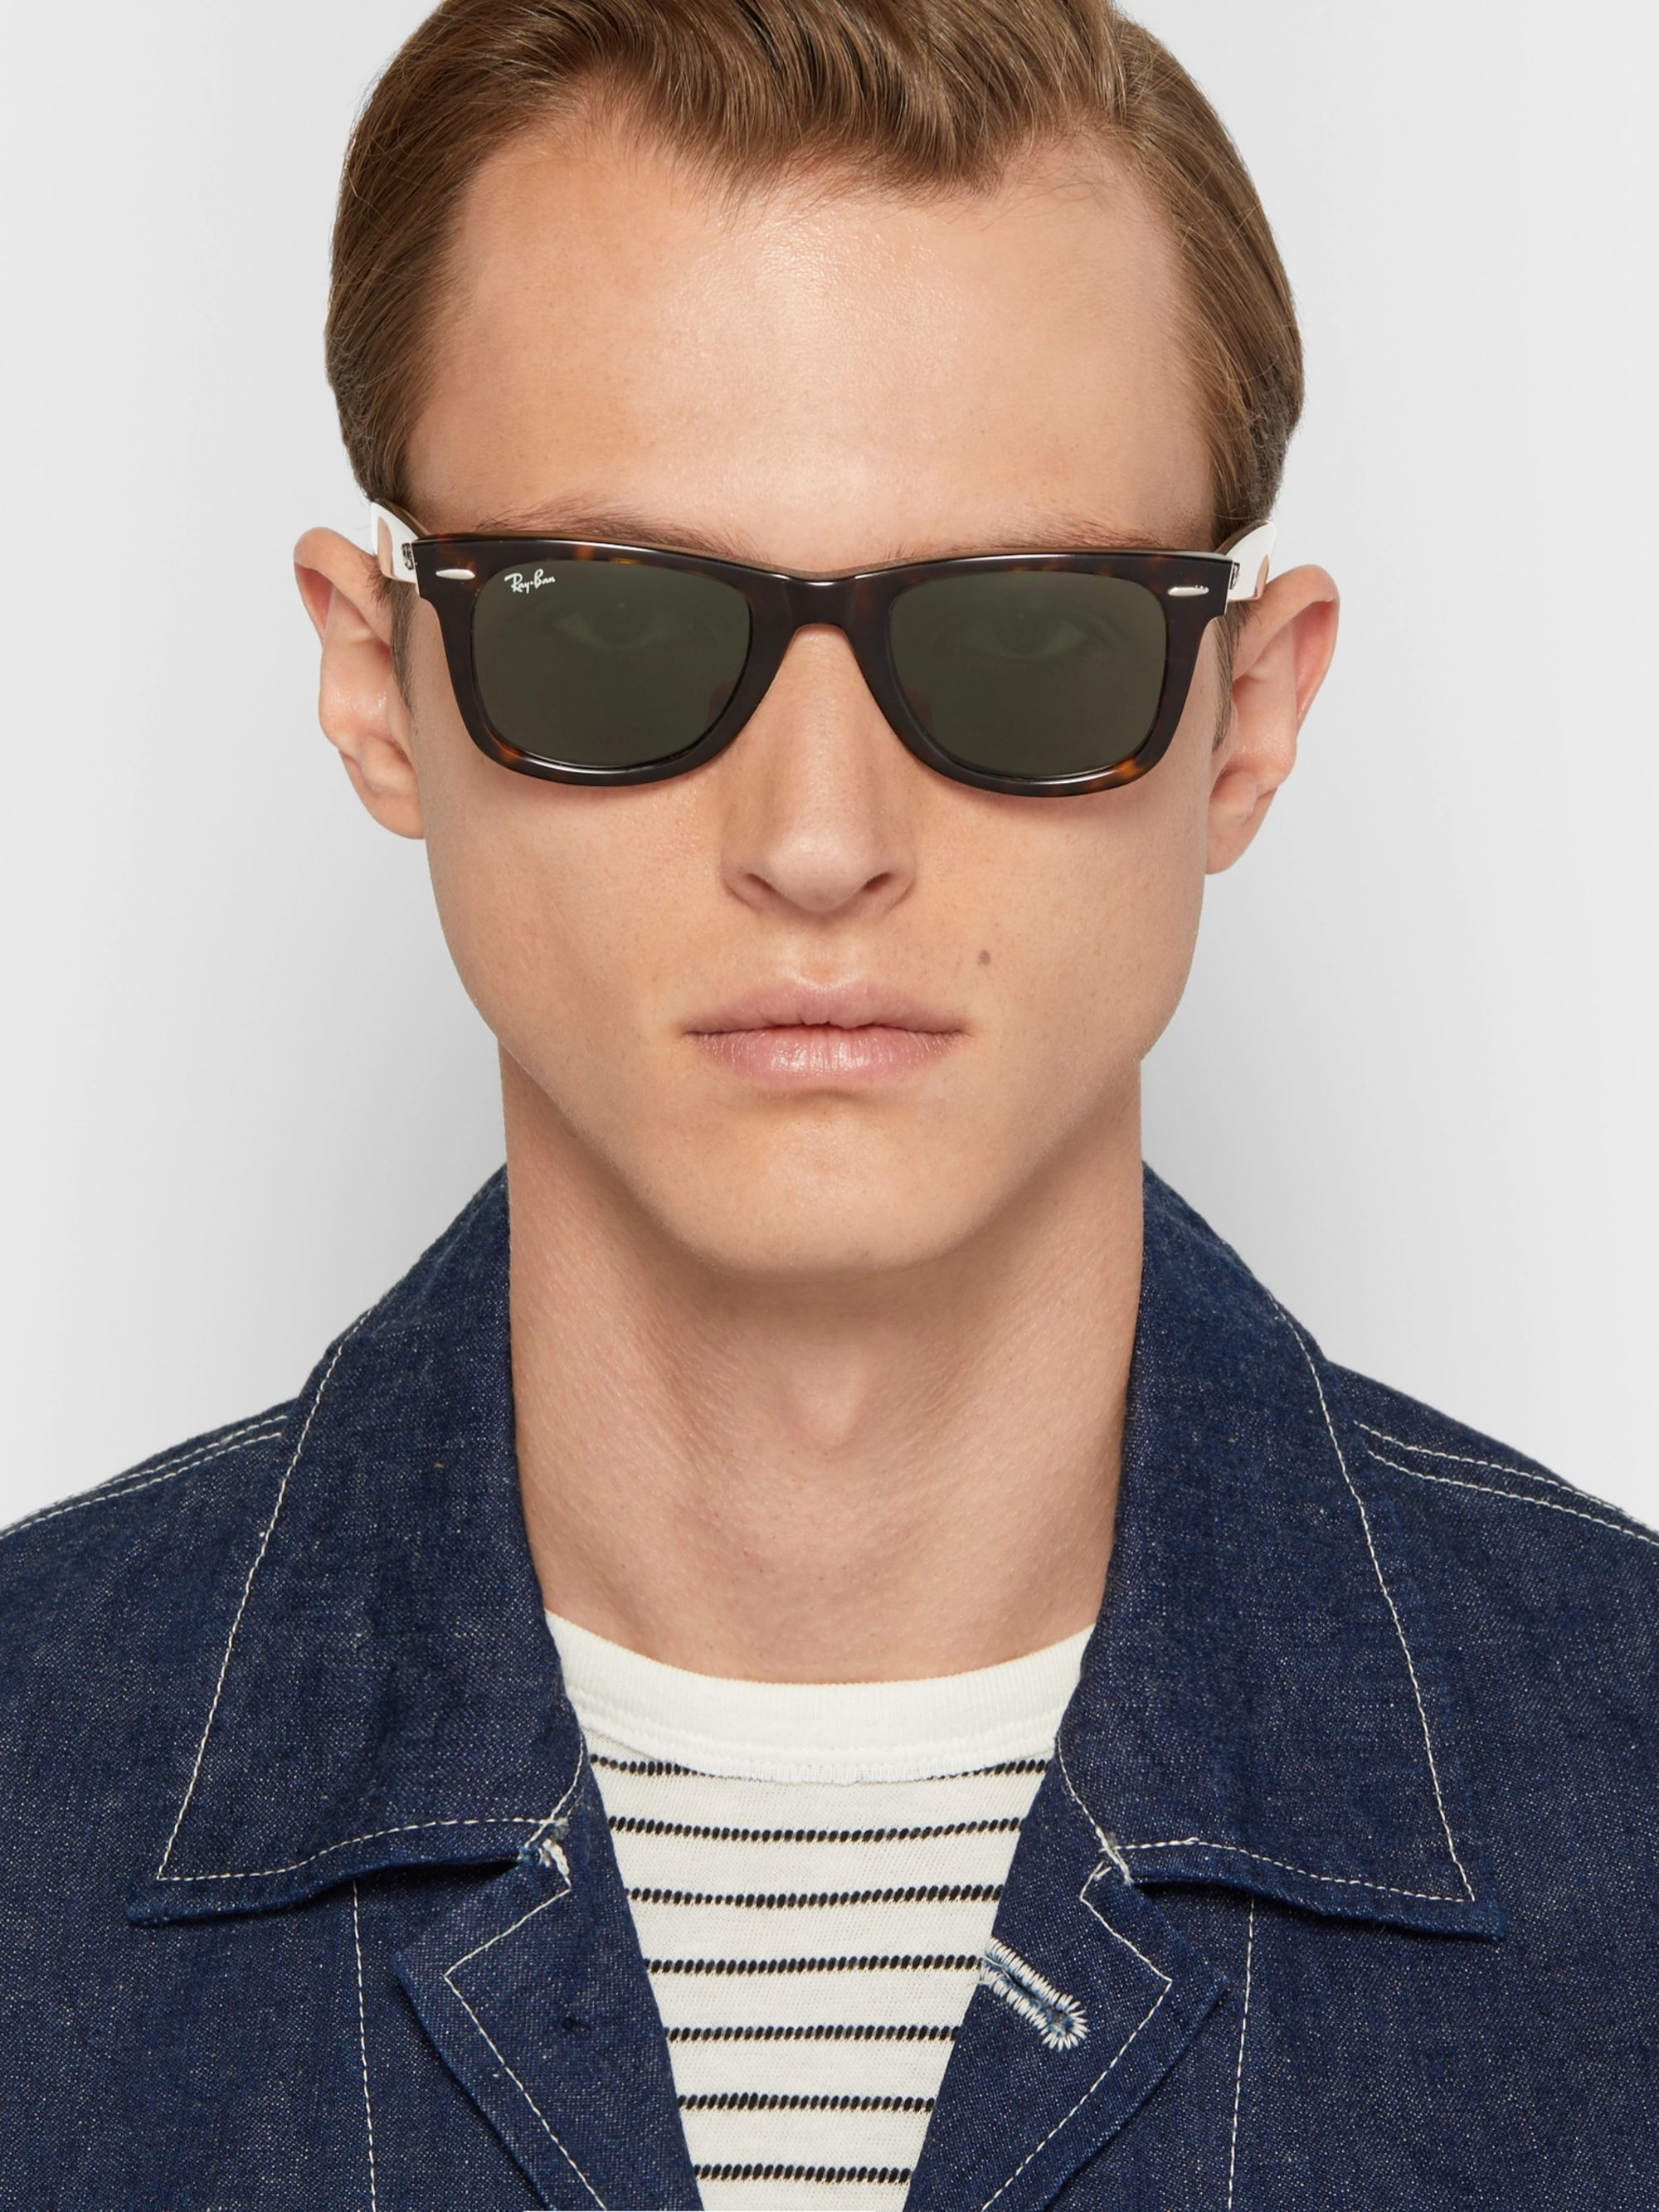 RAY-BAN Original Wayfarer Acetate Sunglasses